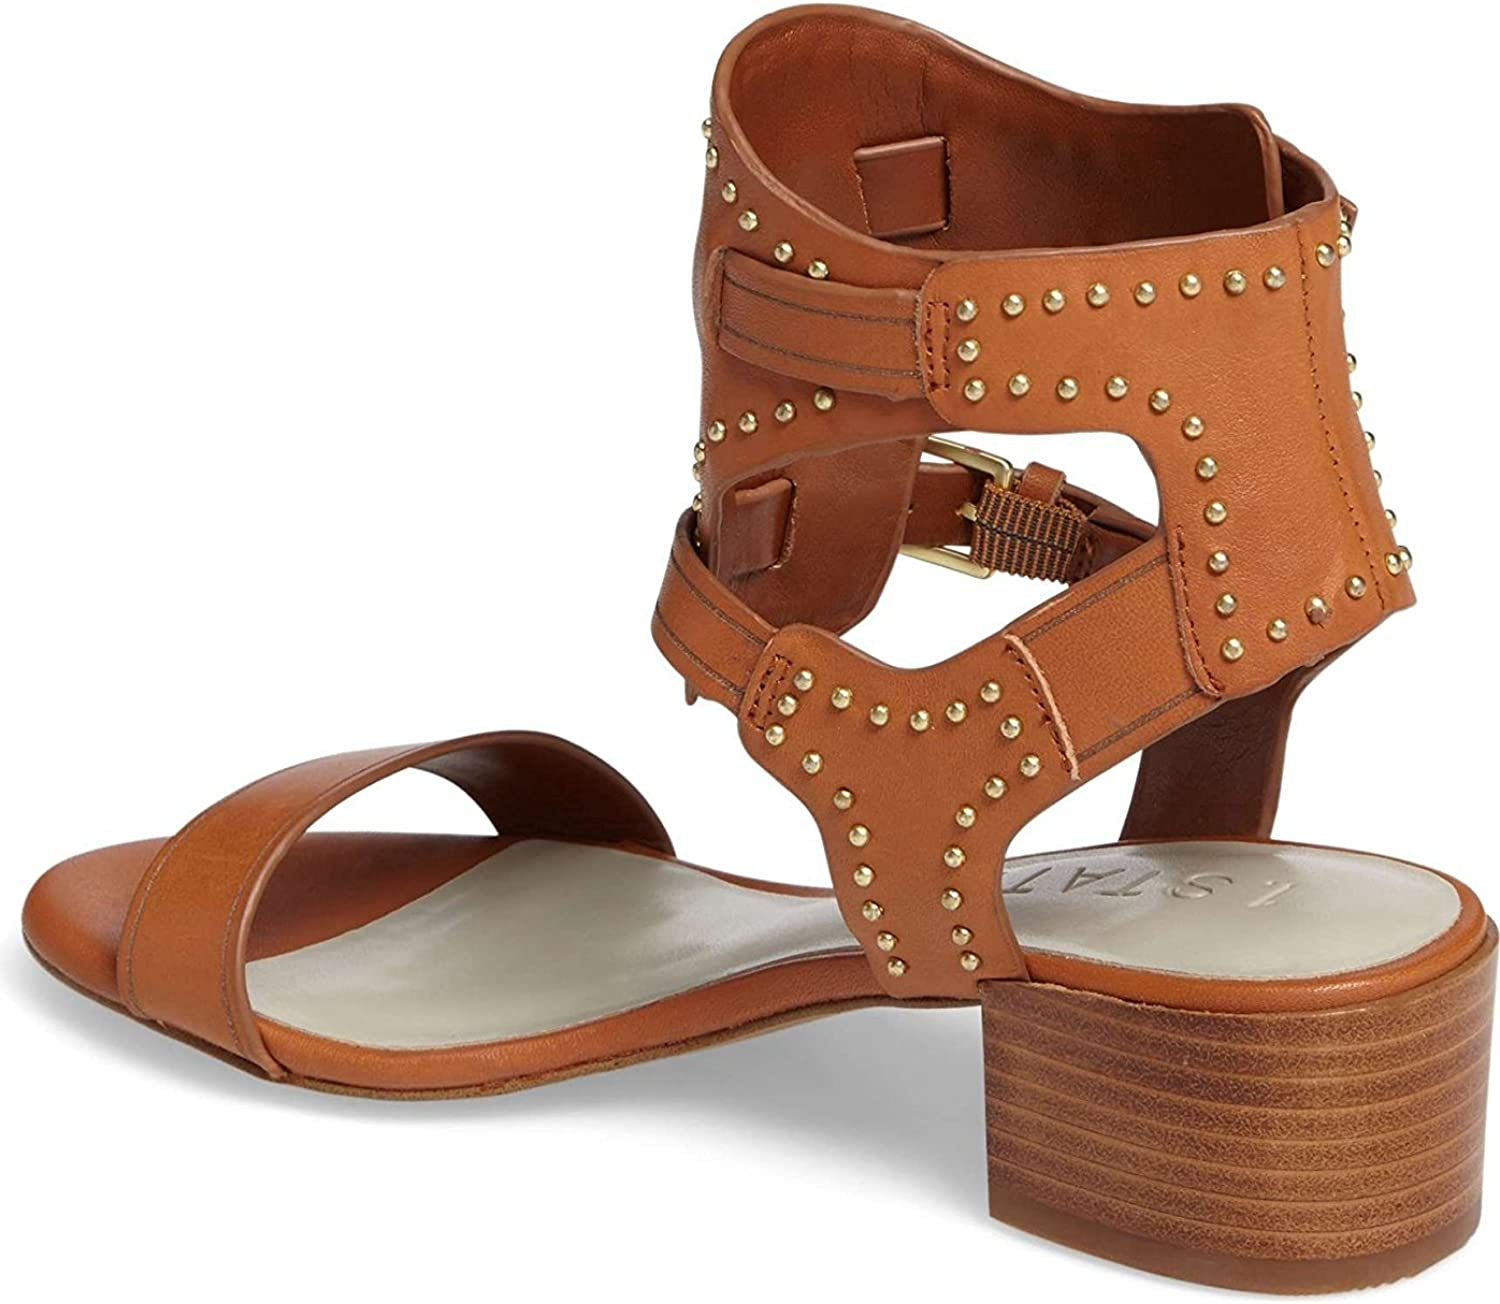 1. State Womens Rylen Leather Open Toe Casual Ankle Strap Sandals